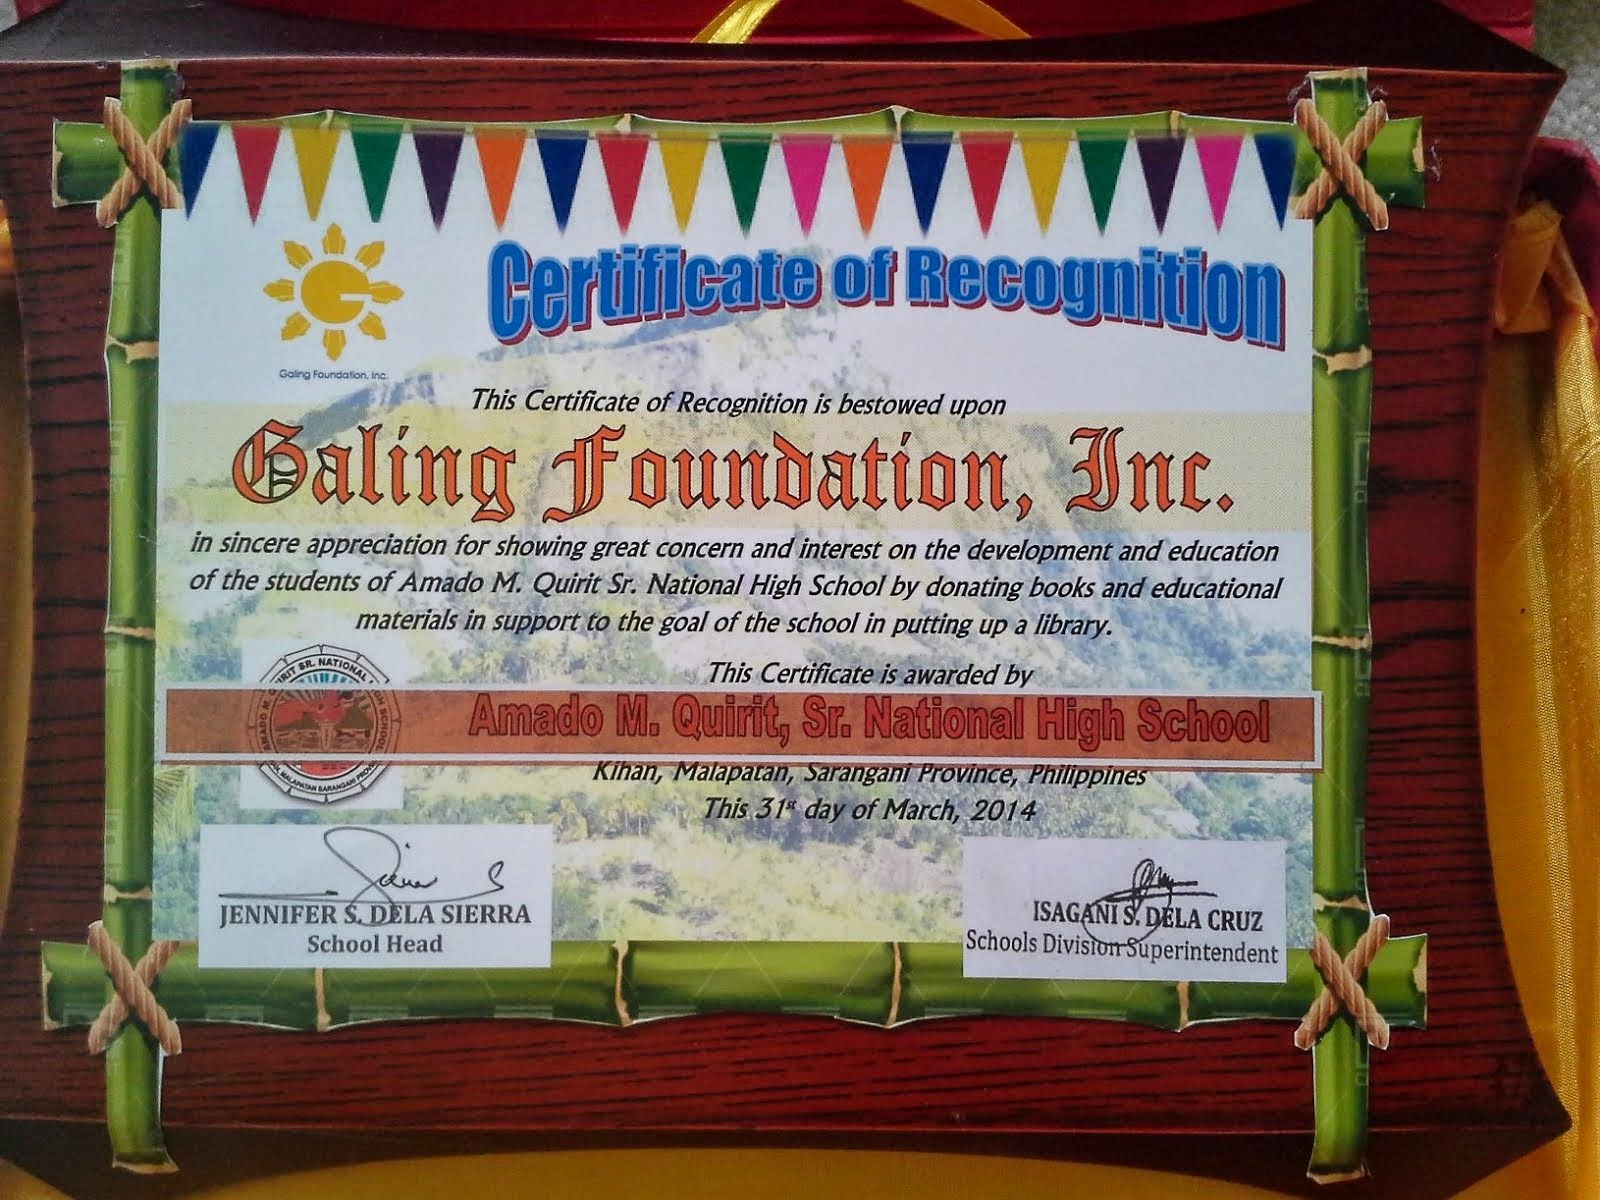 Recognition from Amado M. Quirit Sr. National High School